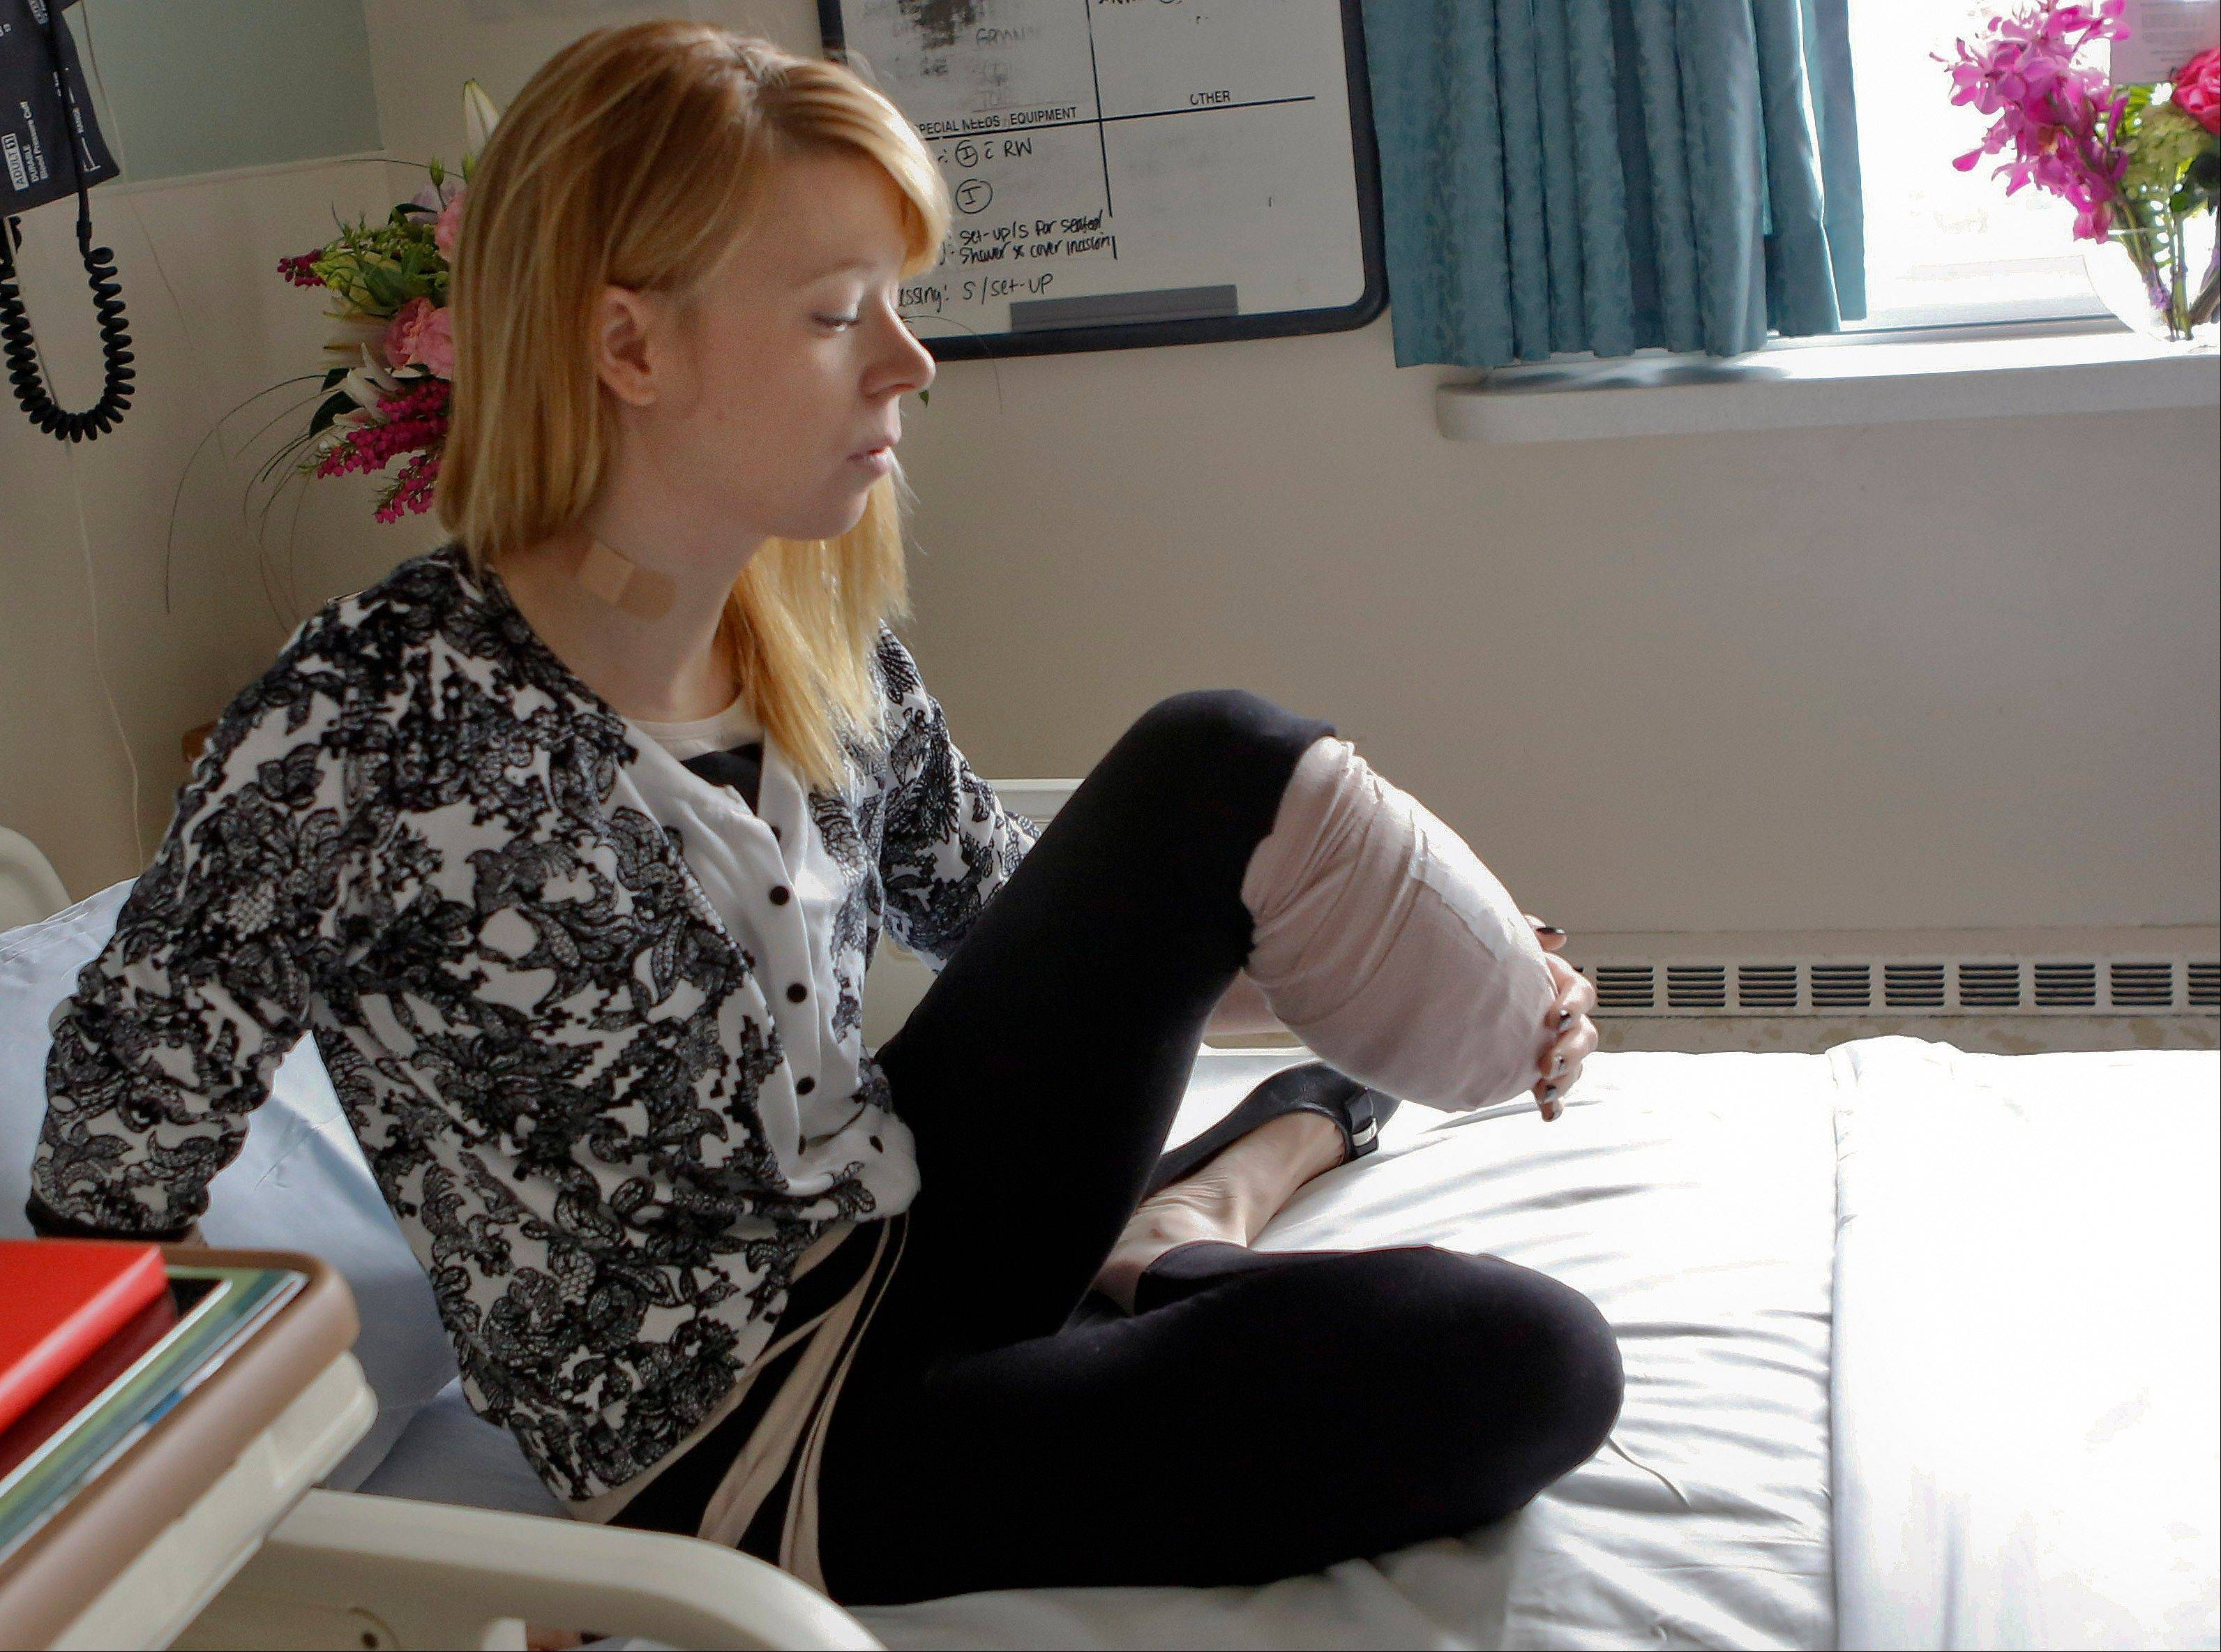 Adrianne Haslet, a professional ballroom dancer injured by one of the bombs that exploded near the Boston Marathon finish line, lifts her bandaged left leg in her bed at Spaulding Rehabilitation Hospital in Boston, Wednesday, April 24, 2013. Haslet, who lost her left foot and part of her lower leg, vows that she will dance again.